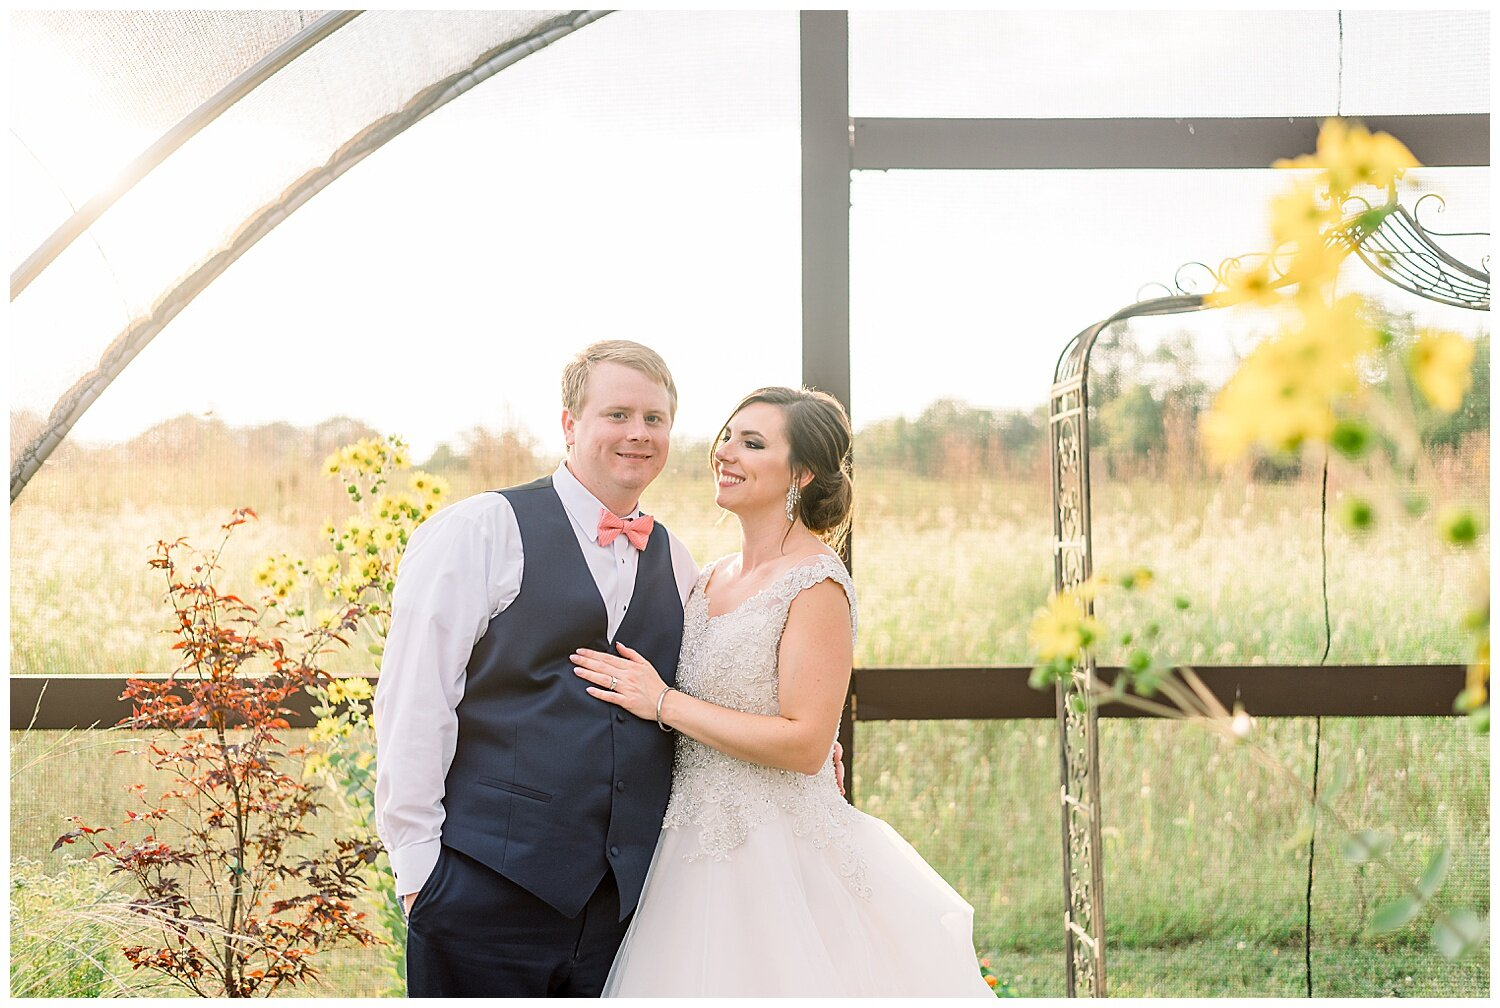 Oak_Openings_Engagement_session_Swanton_Ohio_Cassandra_Janina_Photography_Ohio_Wedding_Photographer_0418.jpg